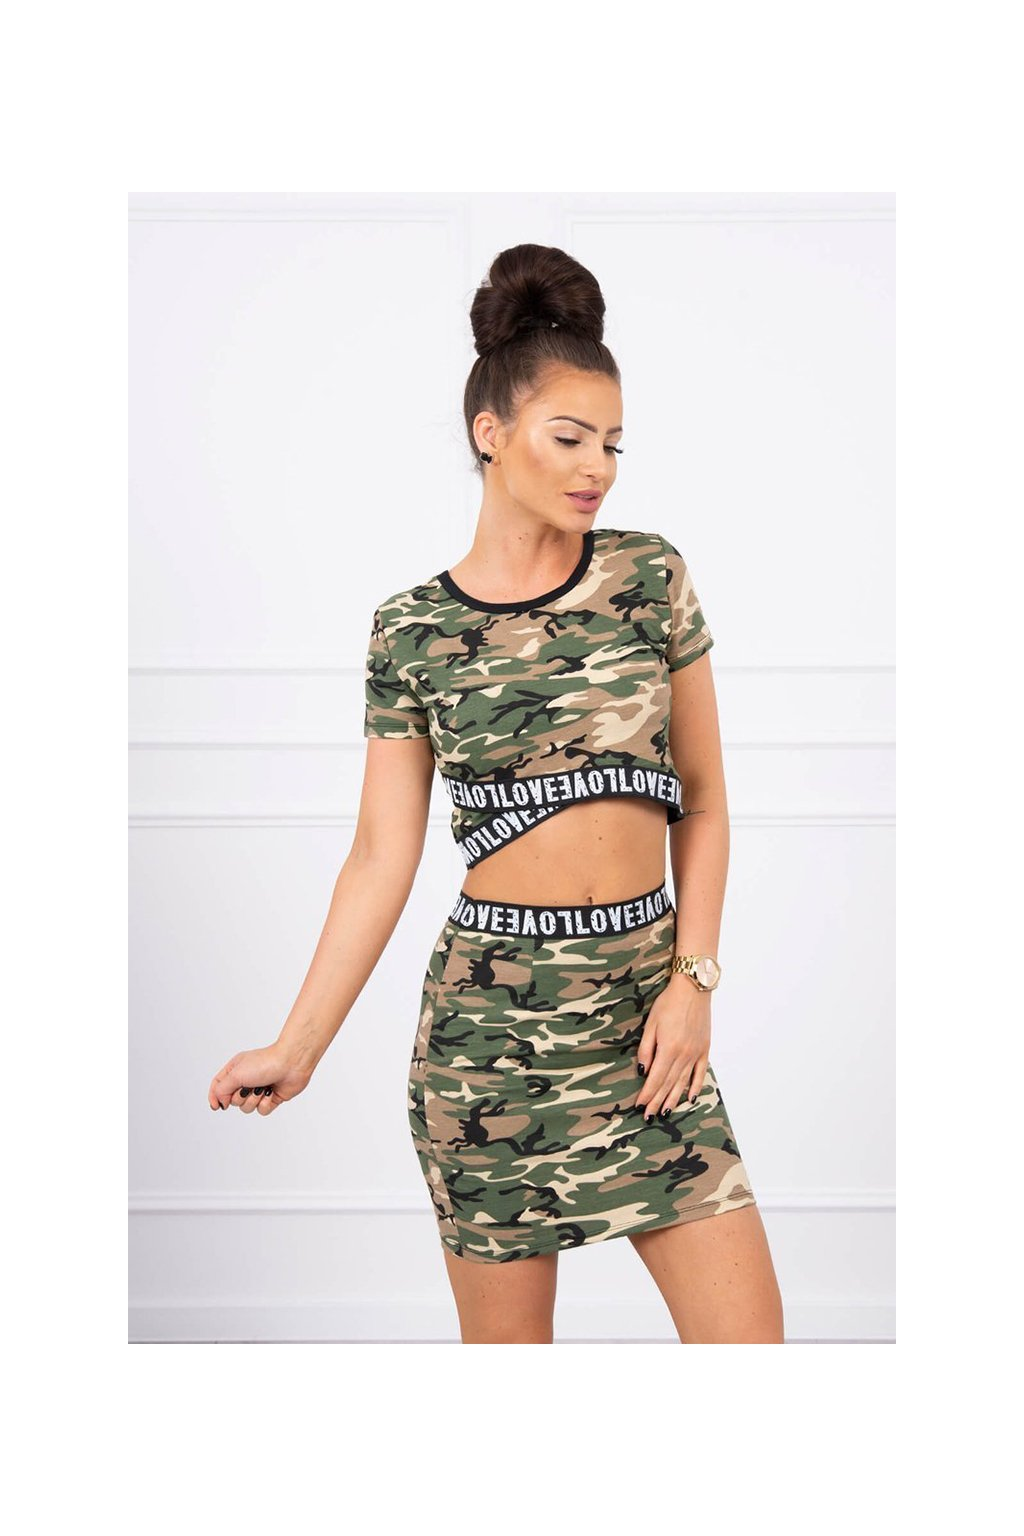 eng pl Set of blouses with a skirt camo khaki beige 17599 3